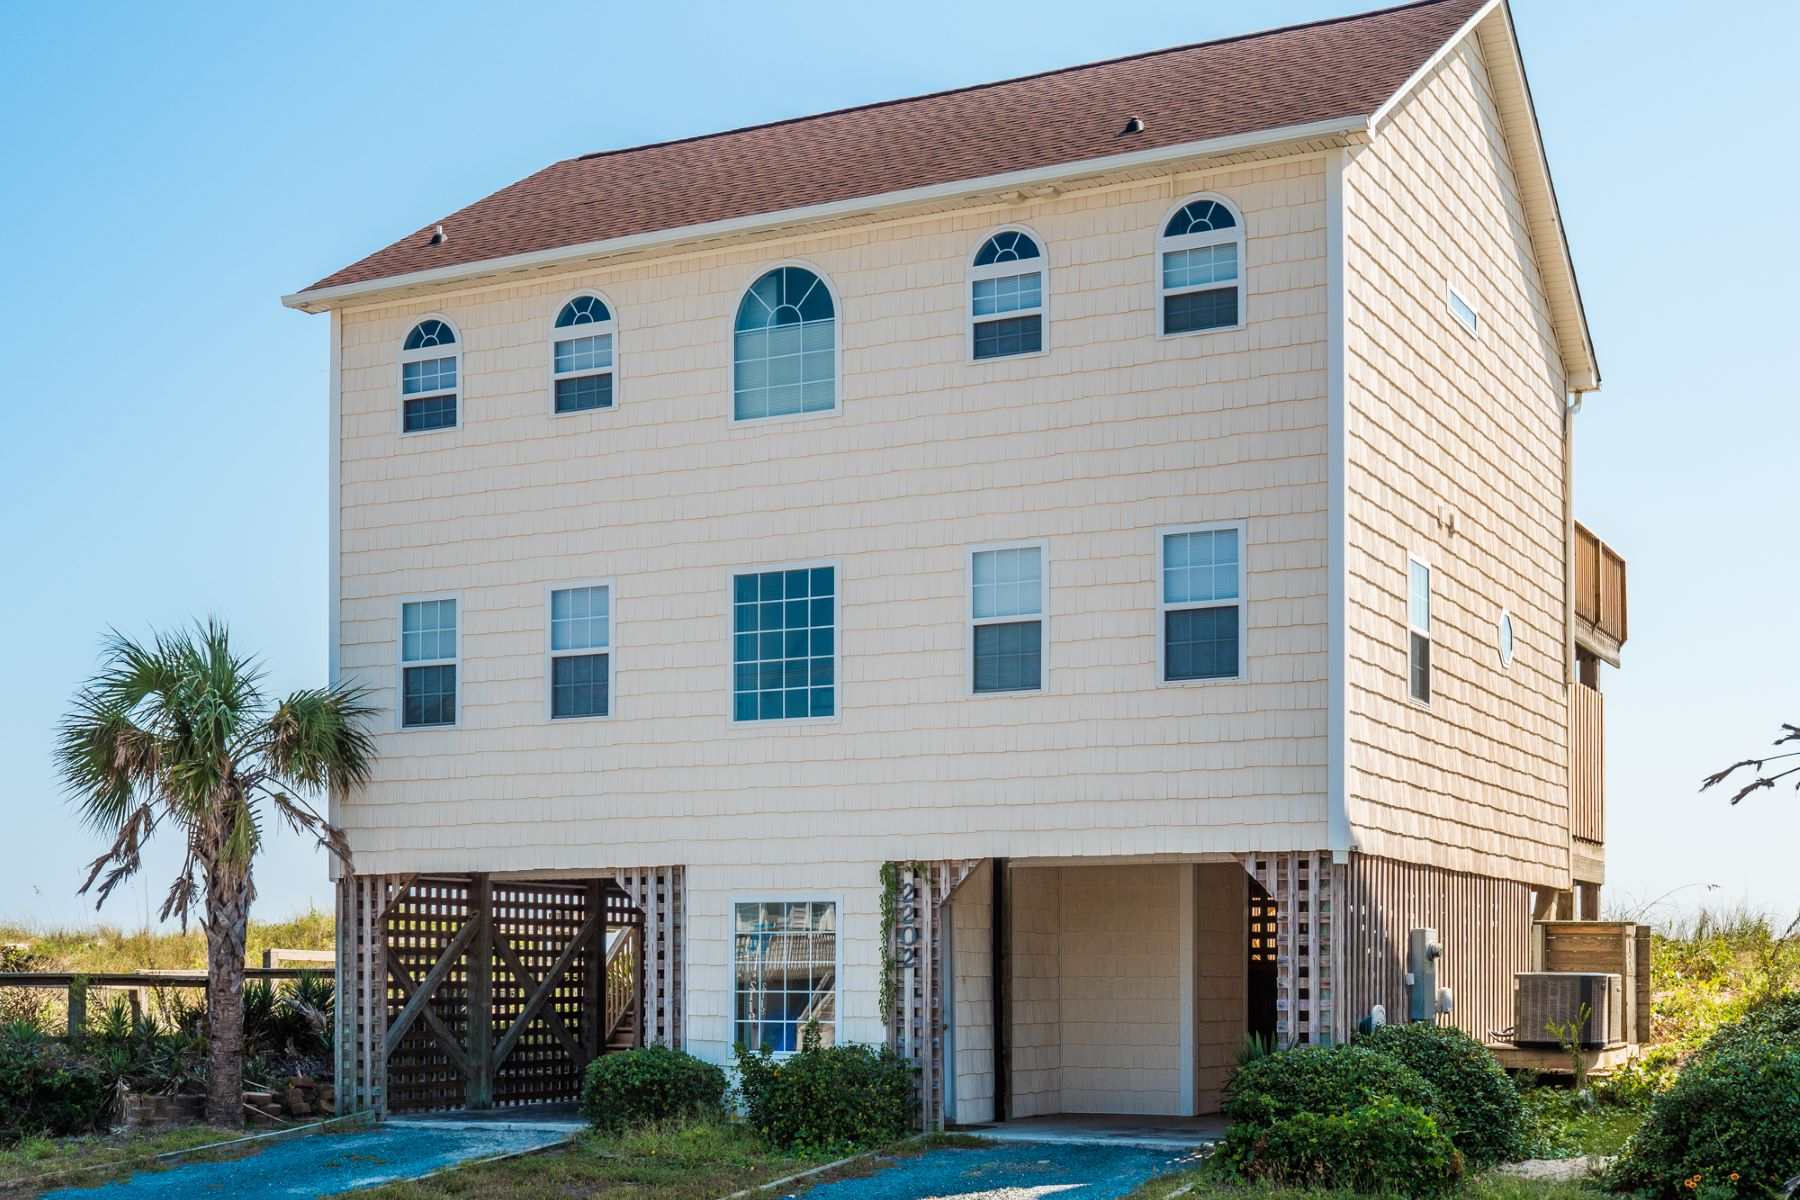 Single Family Homes for Active at Oceanfront Living on Shore Drive 2202 S Shore Dr. Surf City, North Carolina 28445 United States